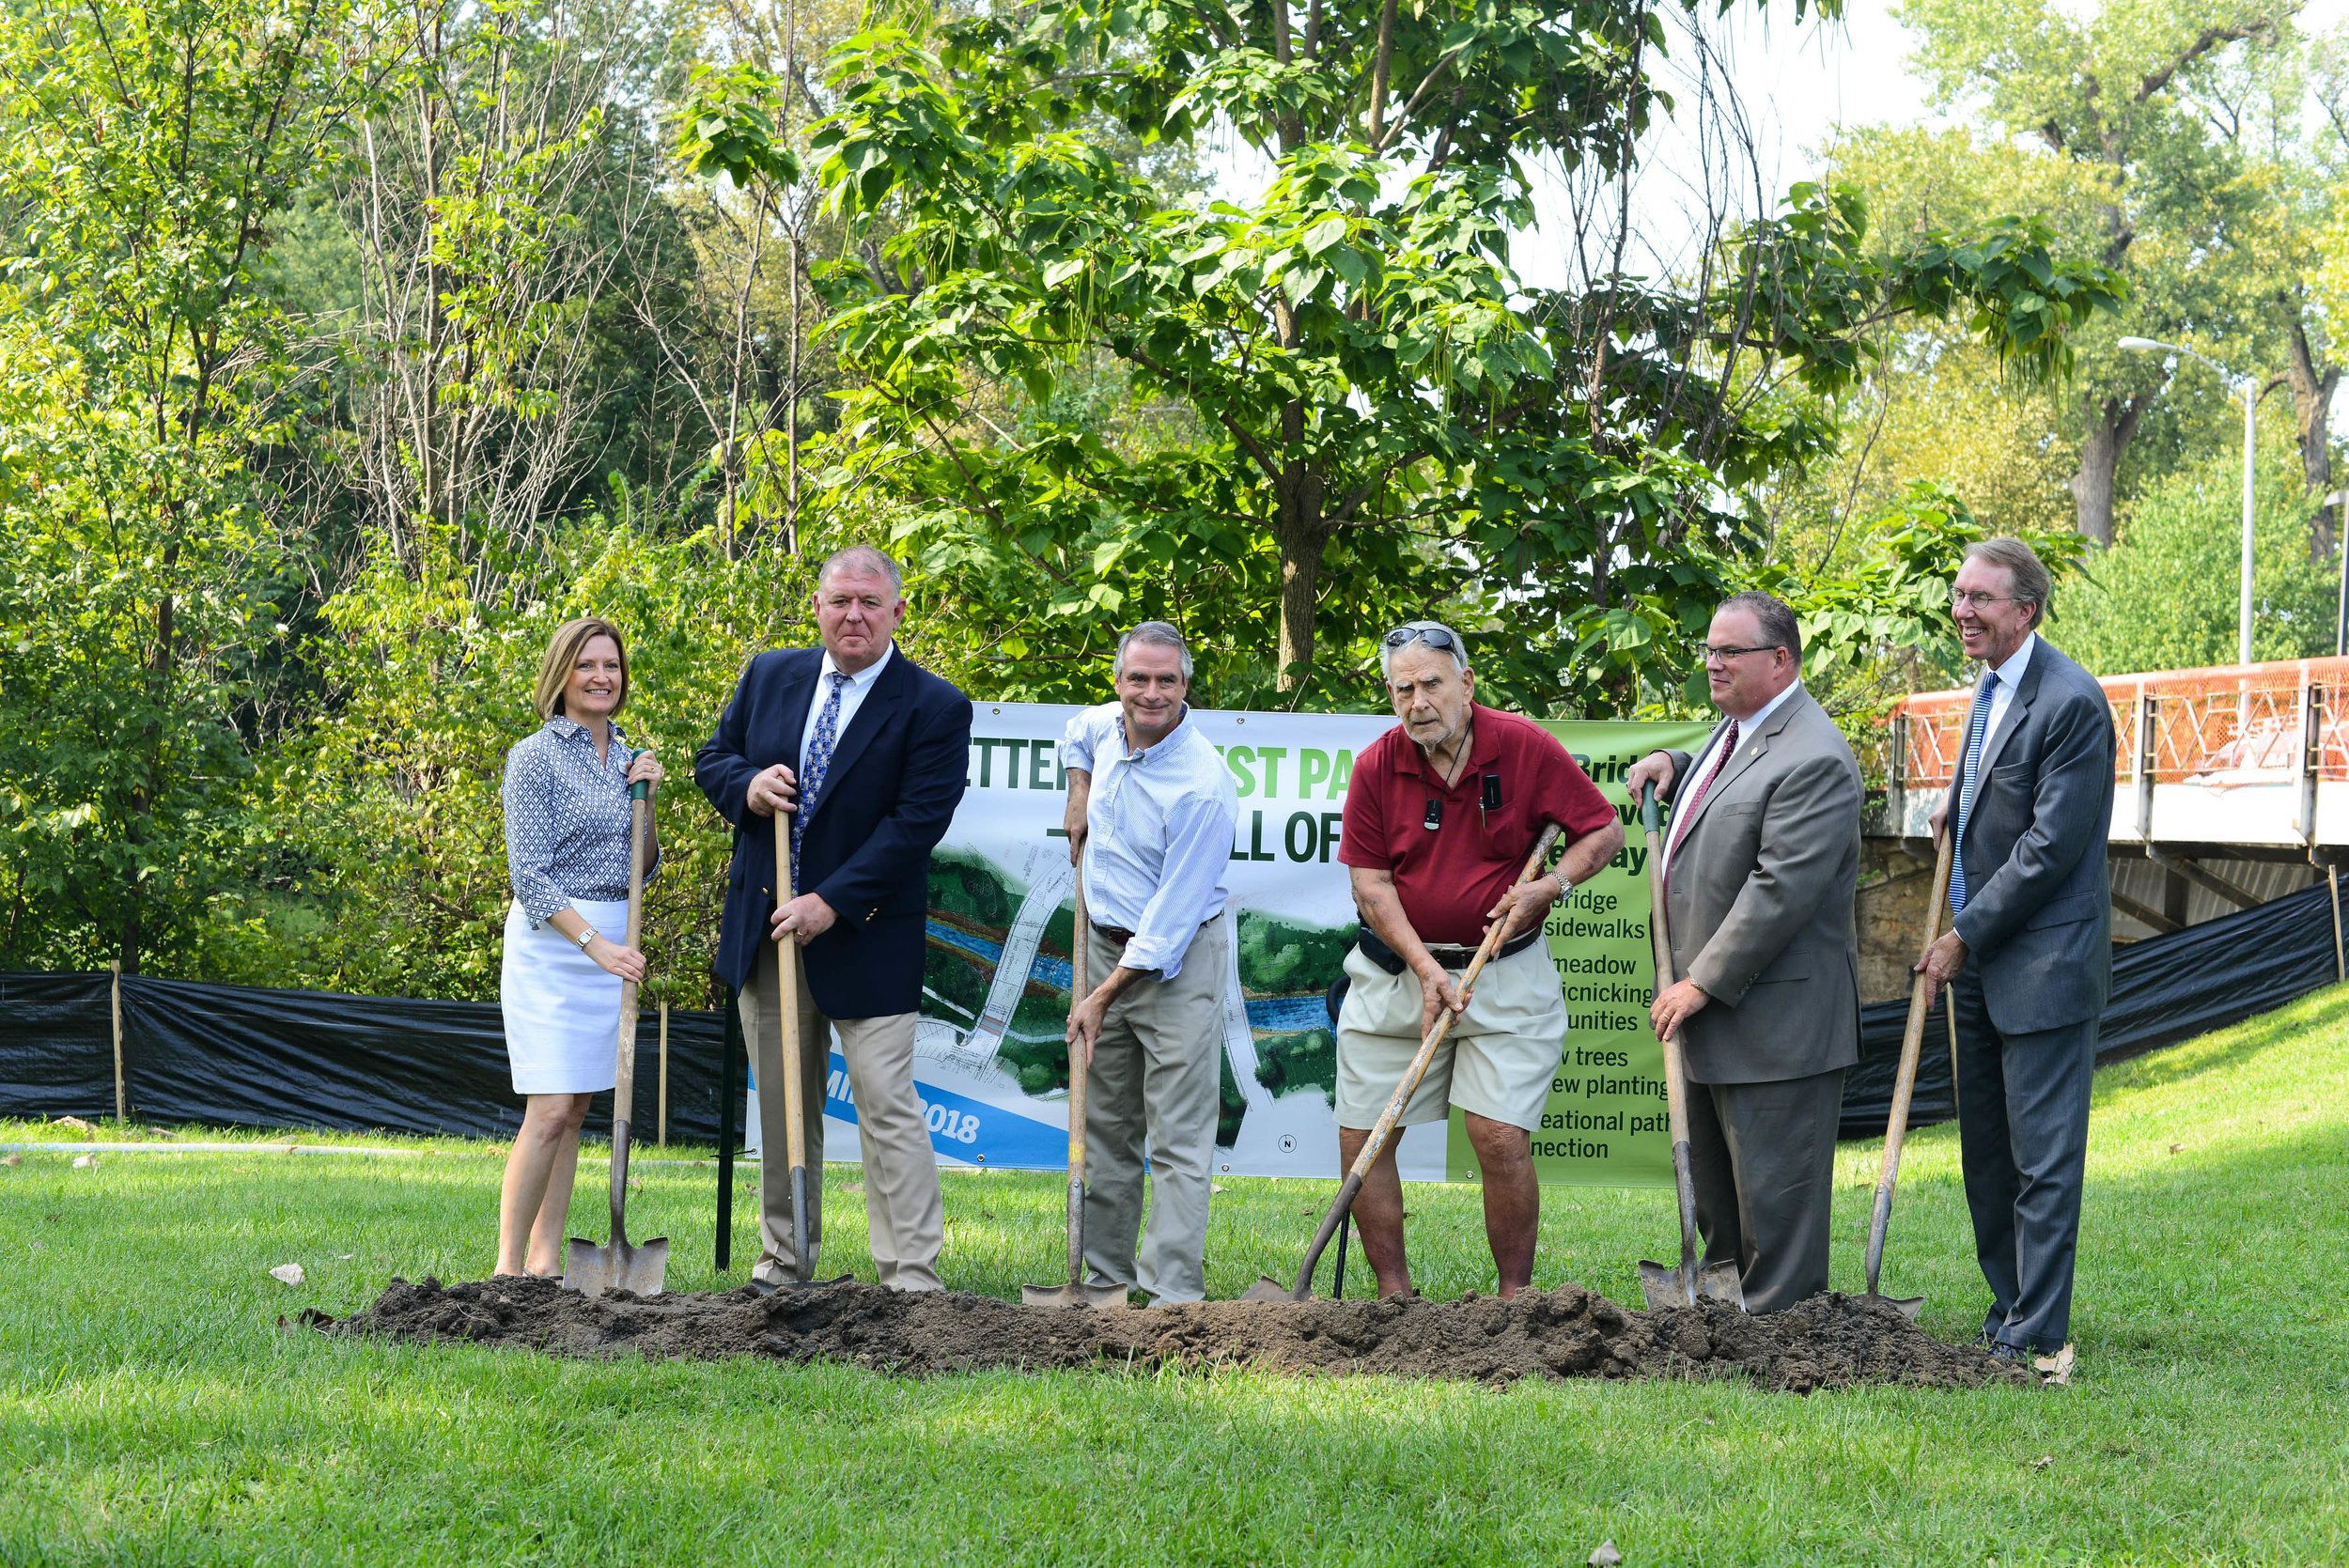 Forest Park Forever President & Executive Director Lesley Hoffarth, City of St. Louis Department of Parks, Recreation & Forestry Director Greg Hayes, project donors Dwyer Brown and Alwal Moore, Board of Public Service President Rich Bradley, and Forest Park Forever Board of Directors Chairman Tom Collins break ground on this exciting project, Monday, August 28, 2017.